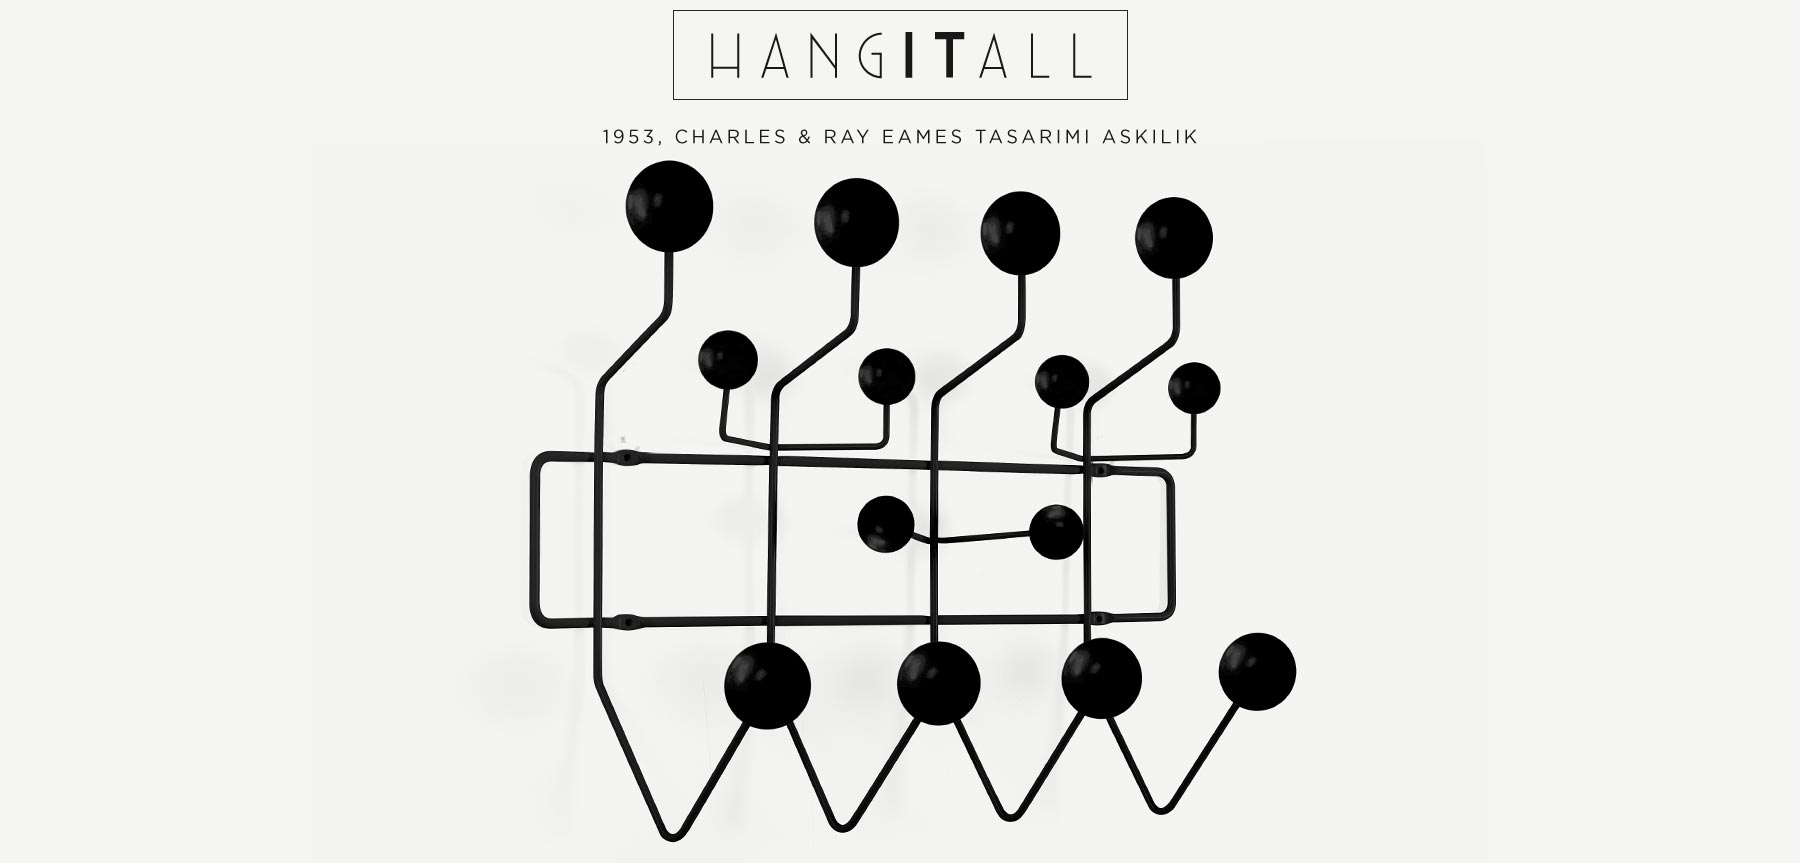 CHARLES EAMES HANG IT ALL SİYAH TOPLU ASKILIK'in resmi